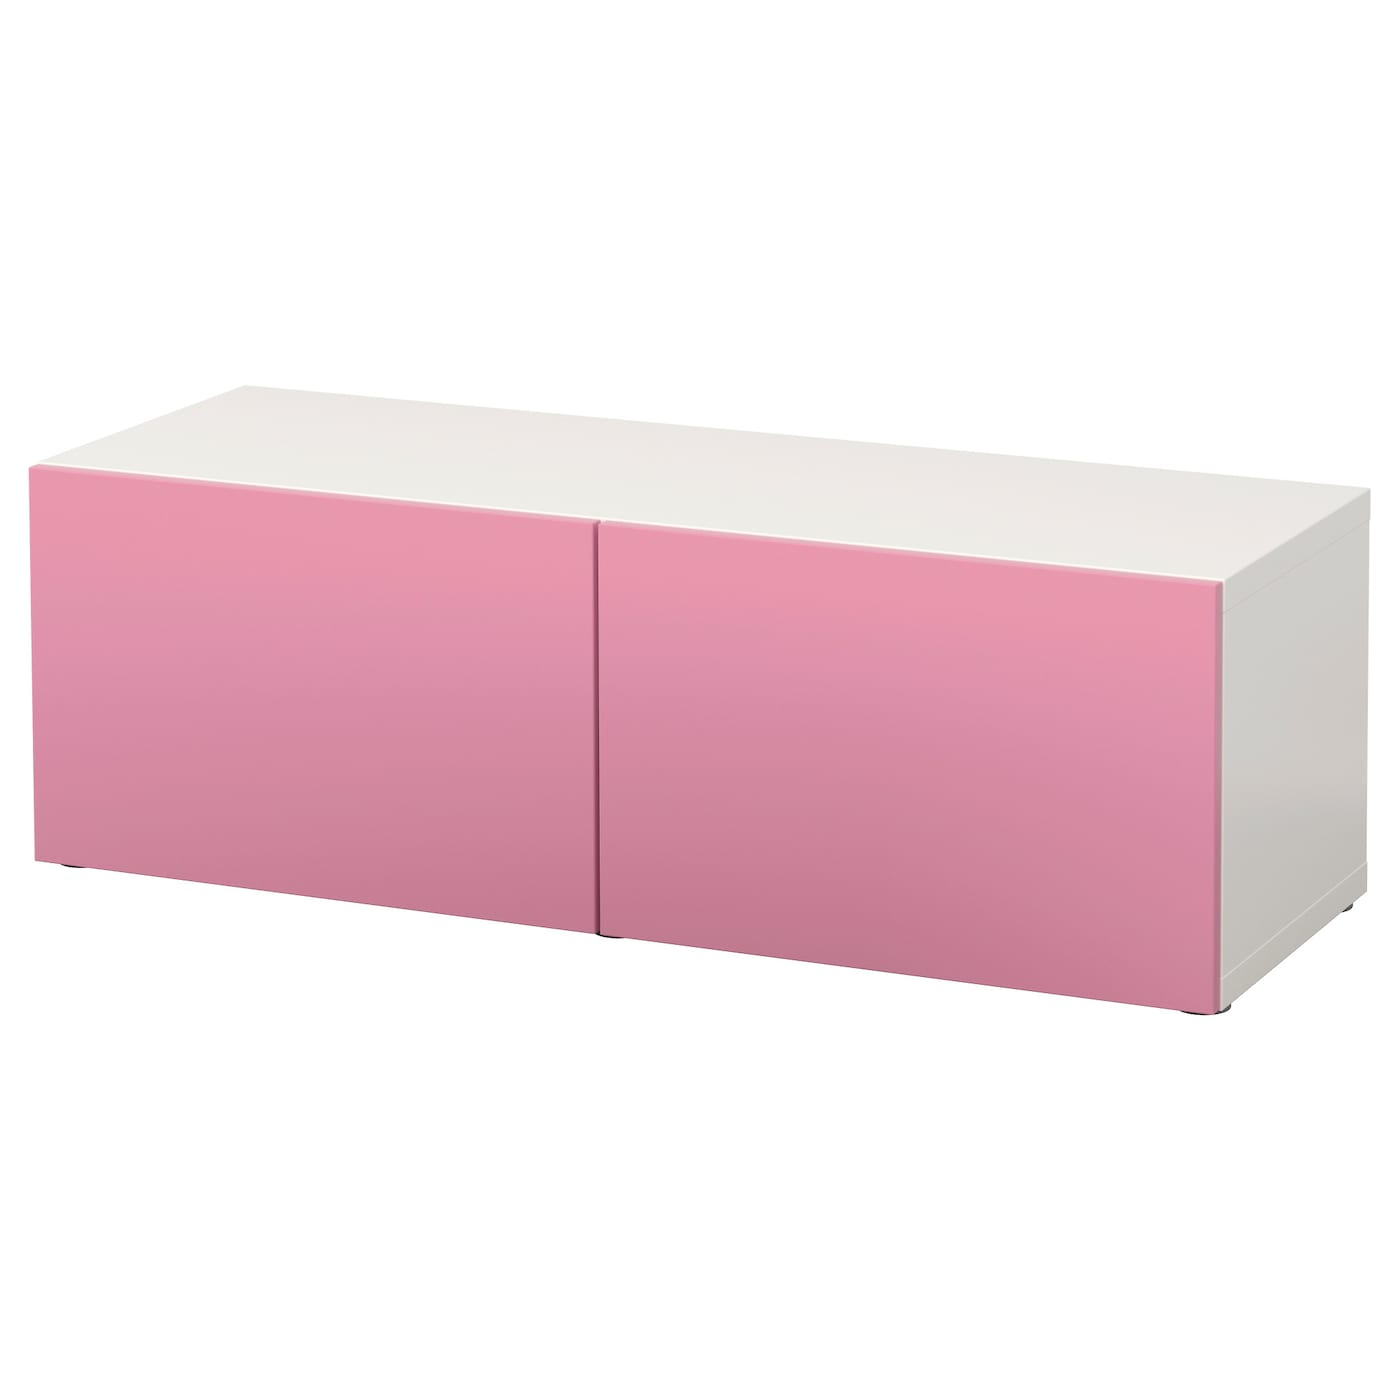 best shelf unit with doors white lappviken pink 120x40x38. Black Bedroom Furniture Sets. Home Design Ideas